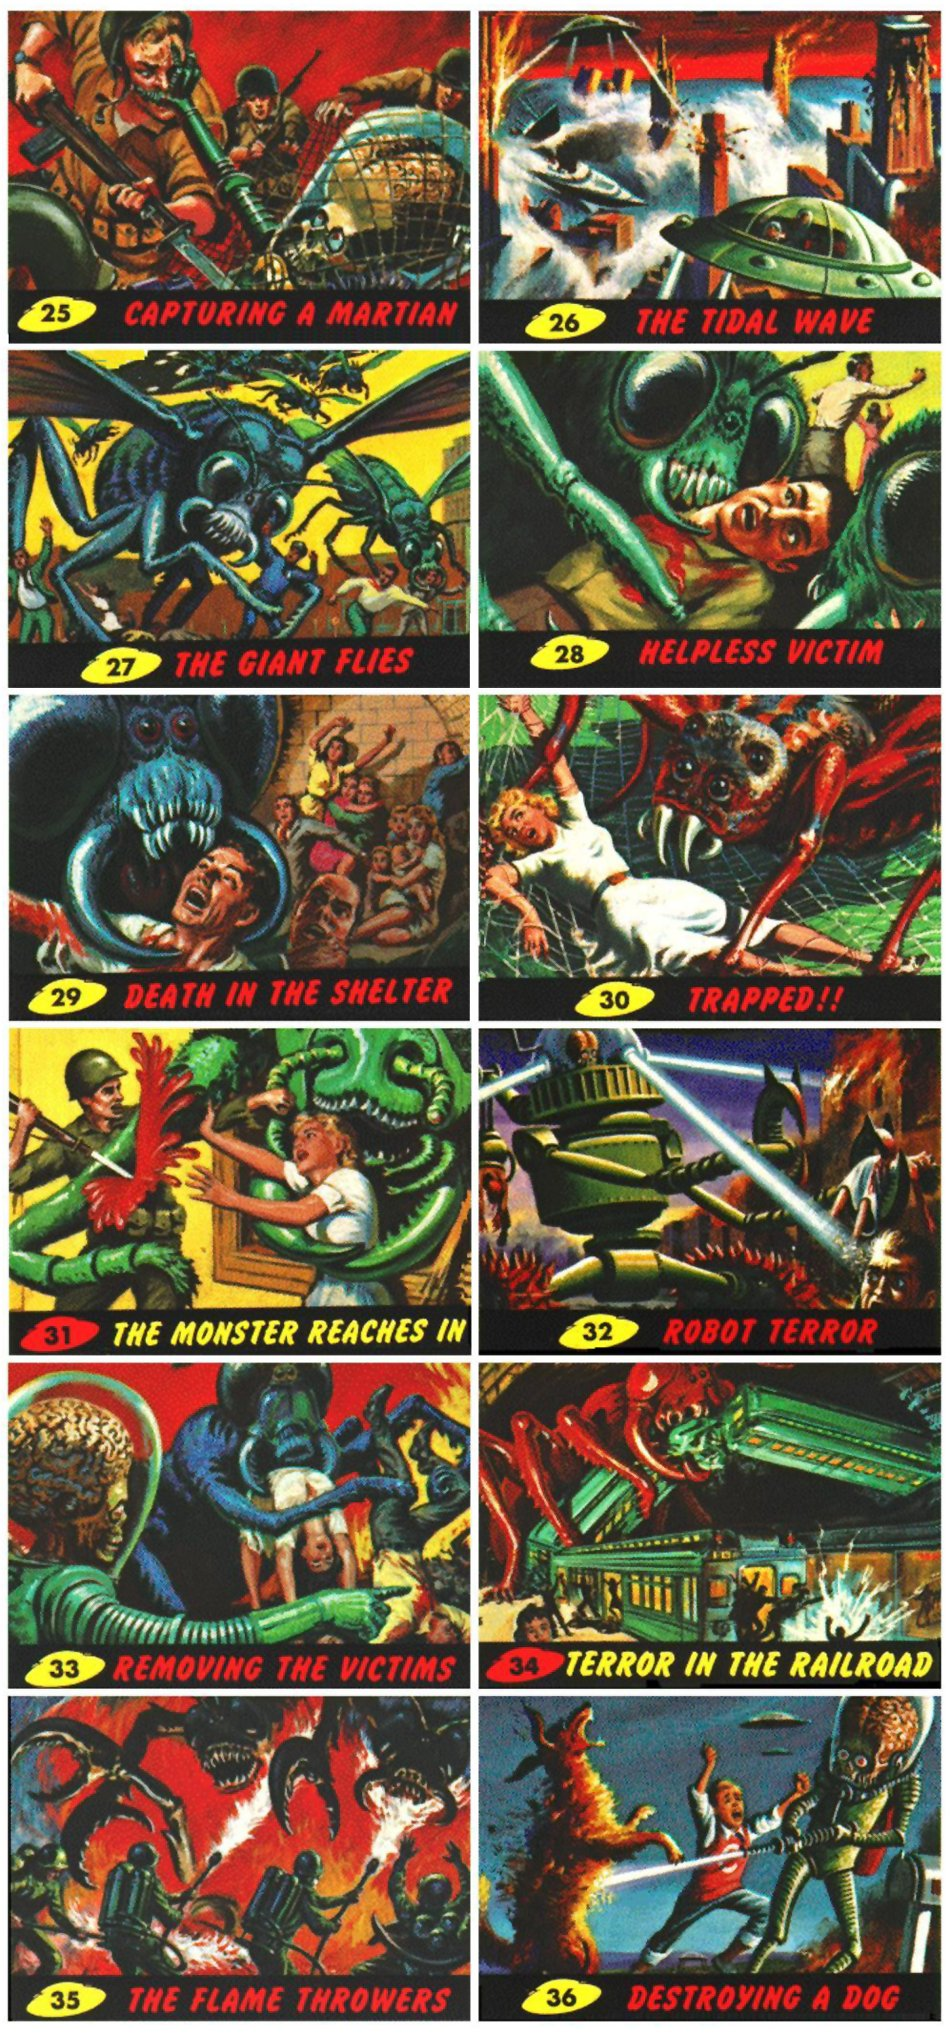 Archives - Old space magazines Topps3